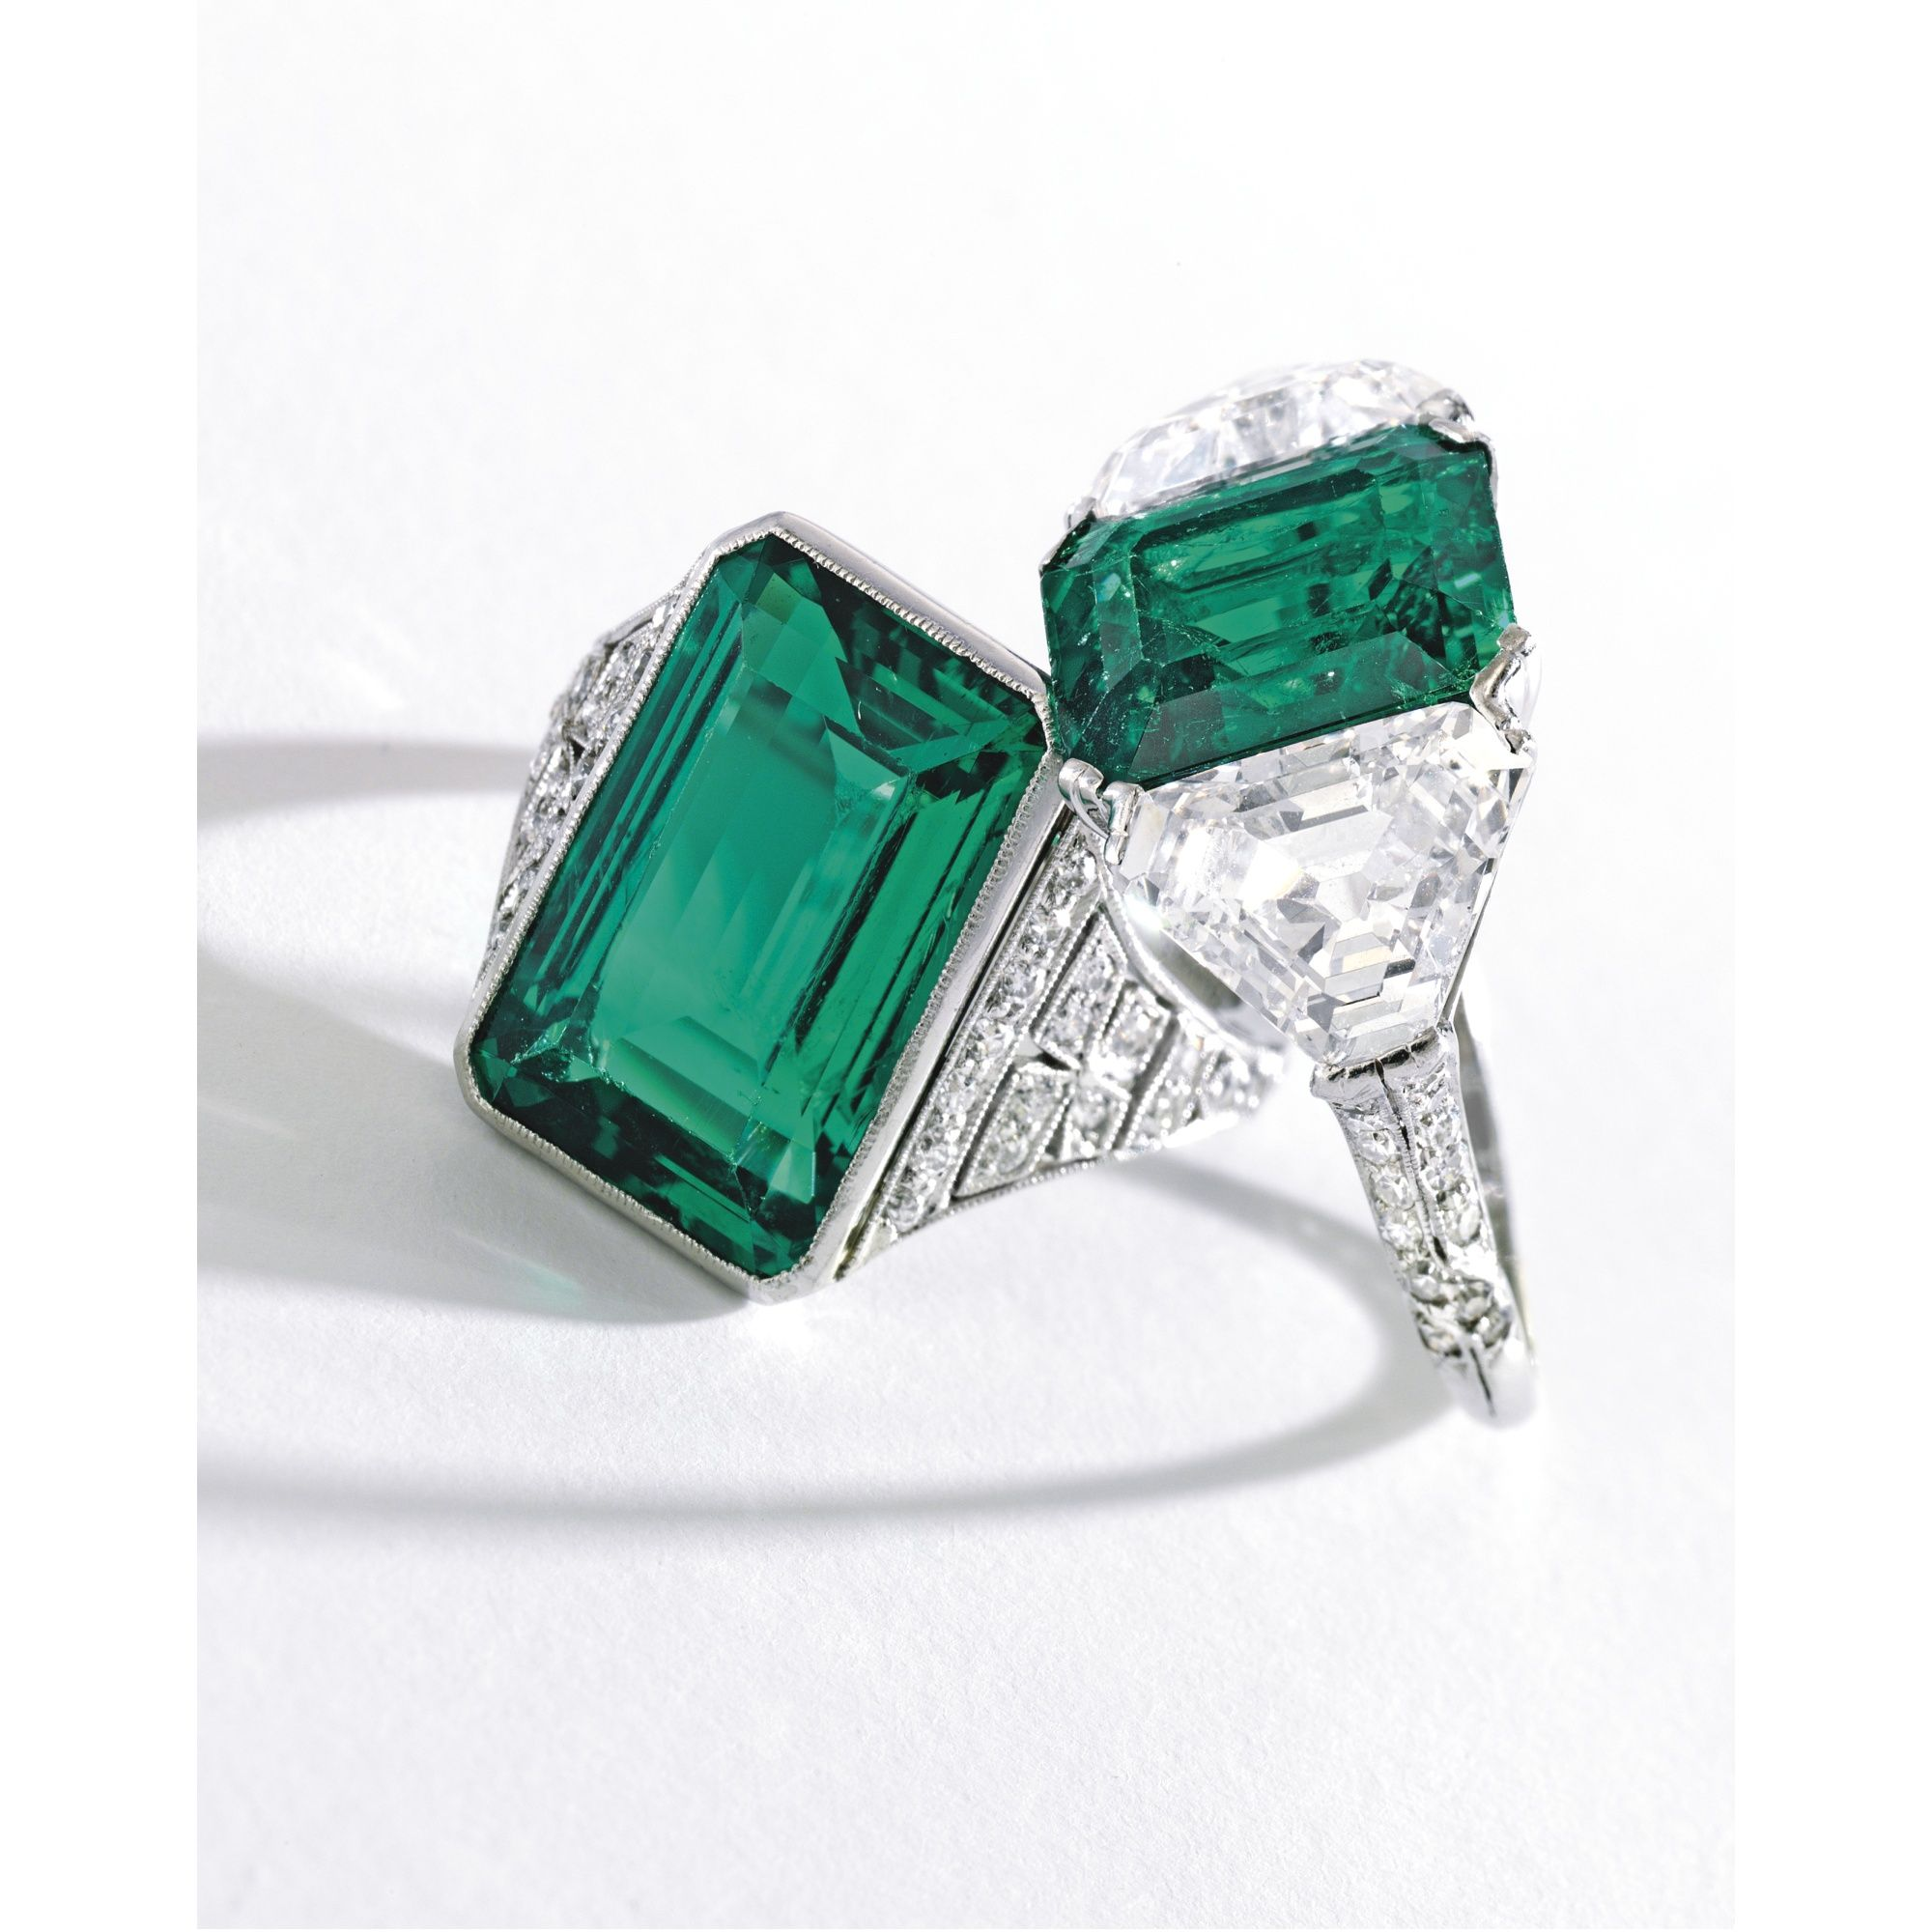 emerald rings untreated carats by colombian leighton emeral fred ring